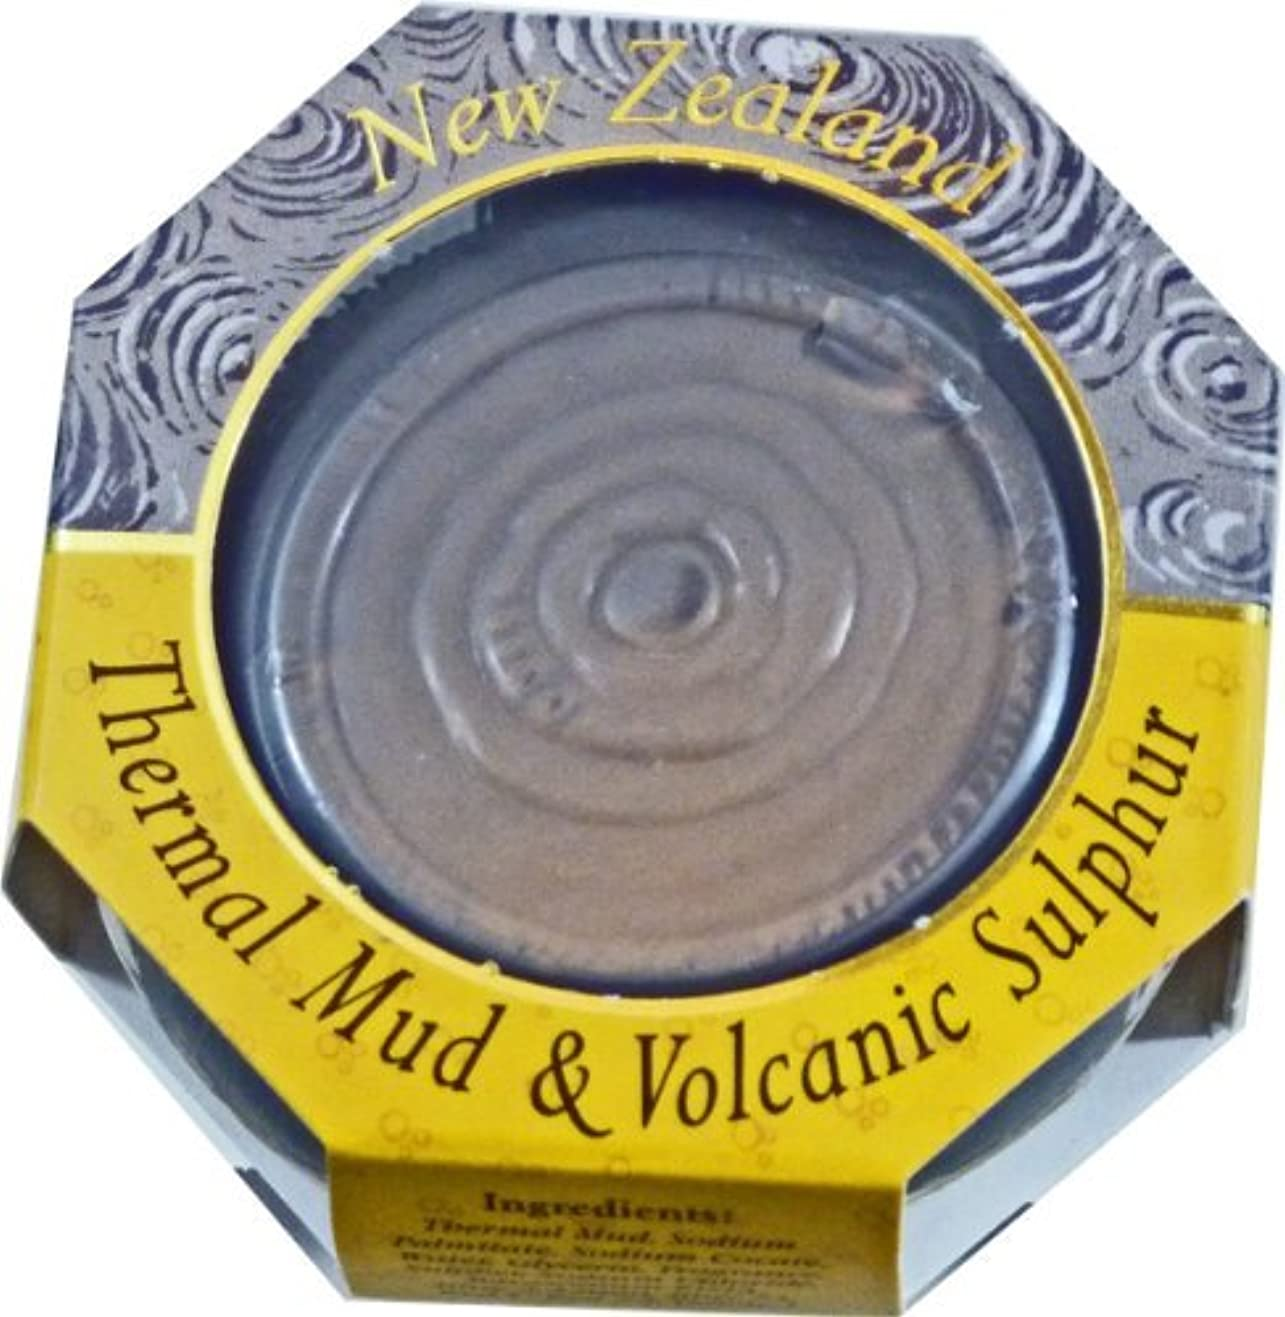 Soap Thermal Mud & Sulphur 115g